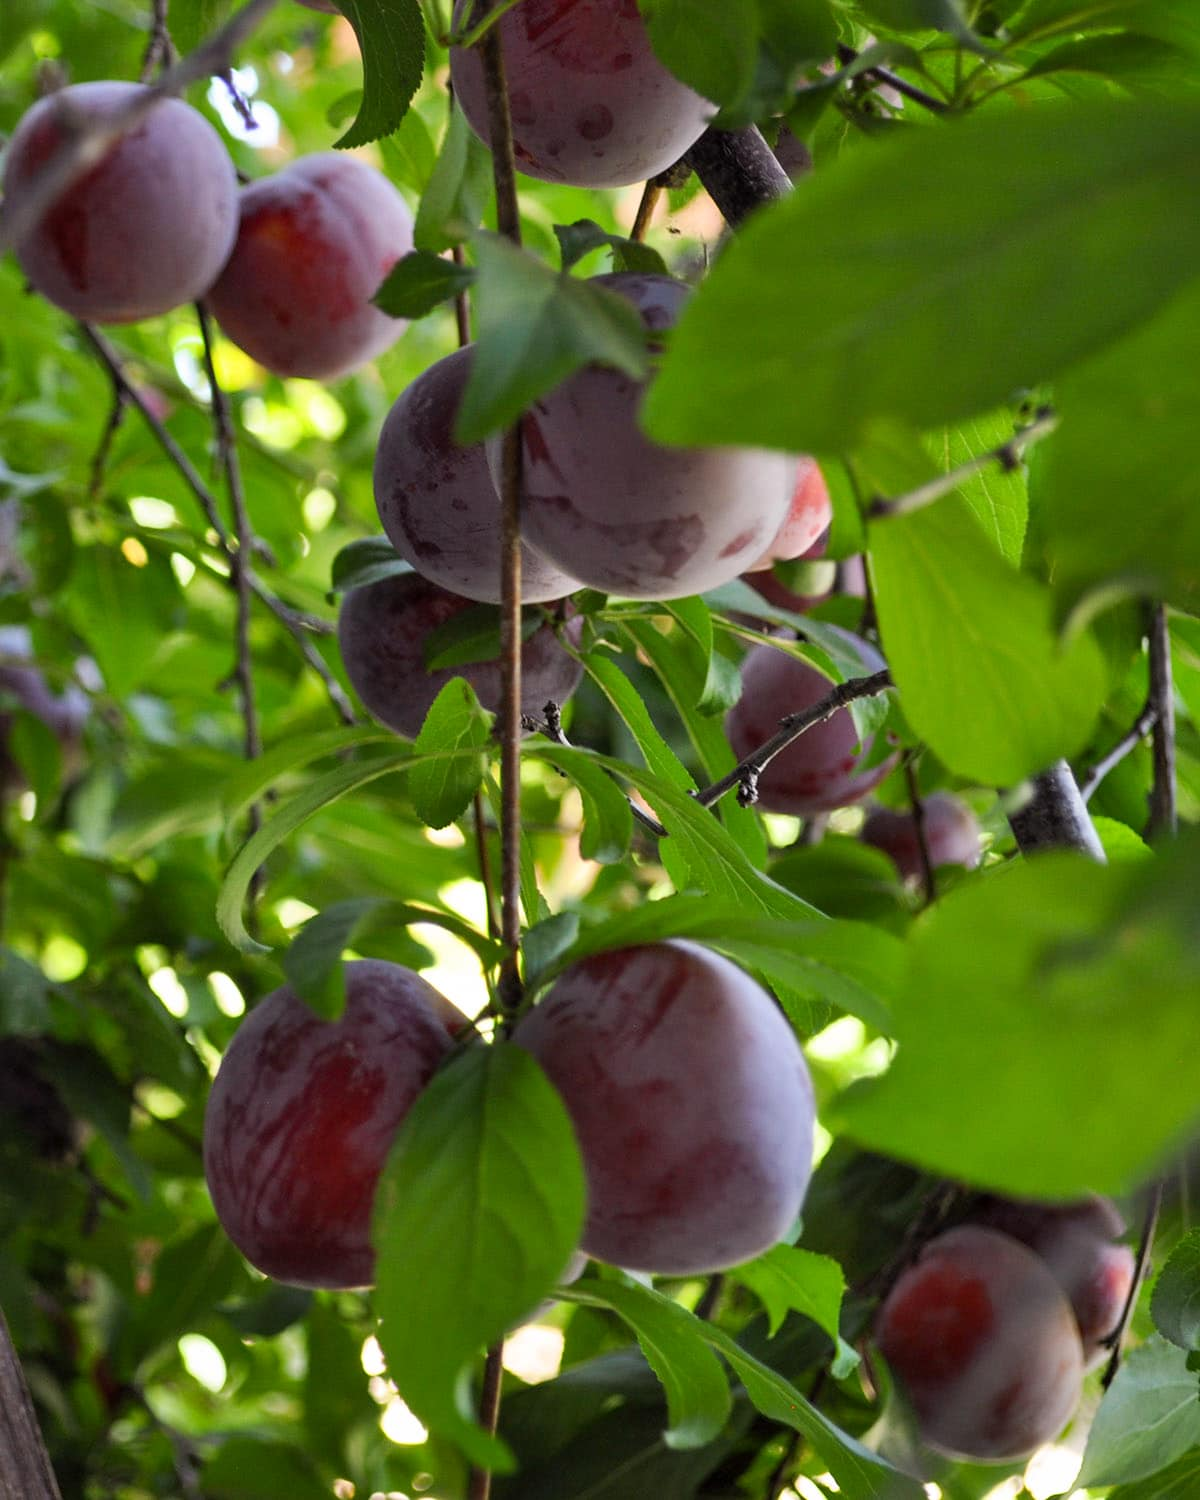 a close up of a plum tree full of ripe plums